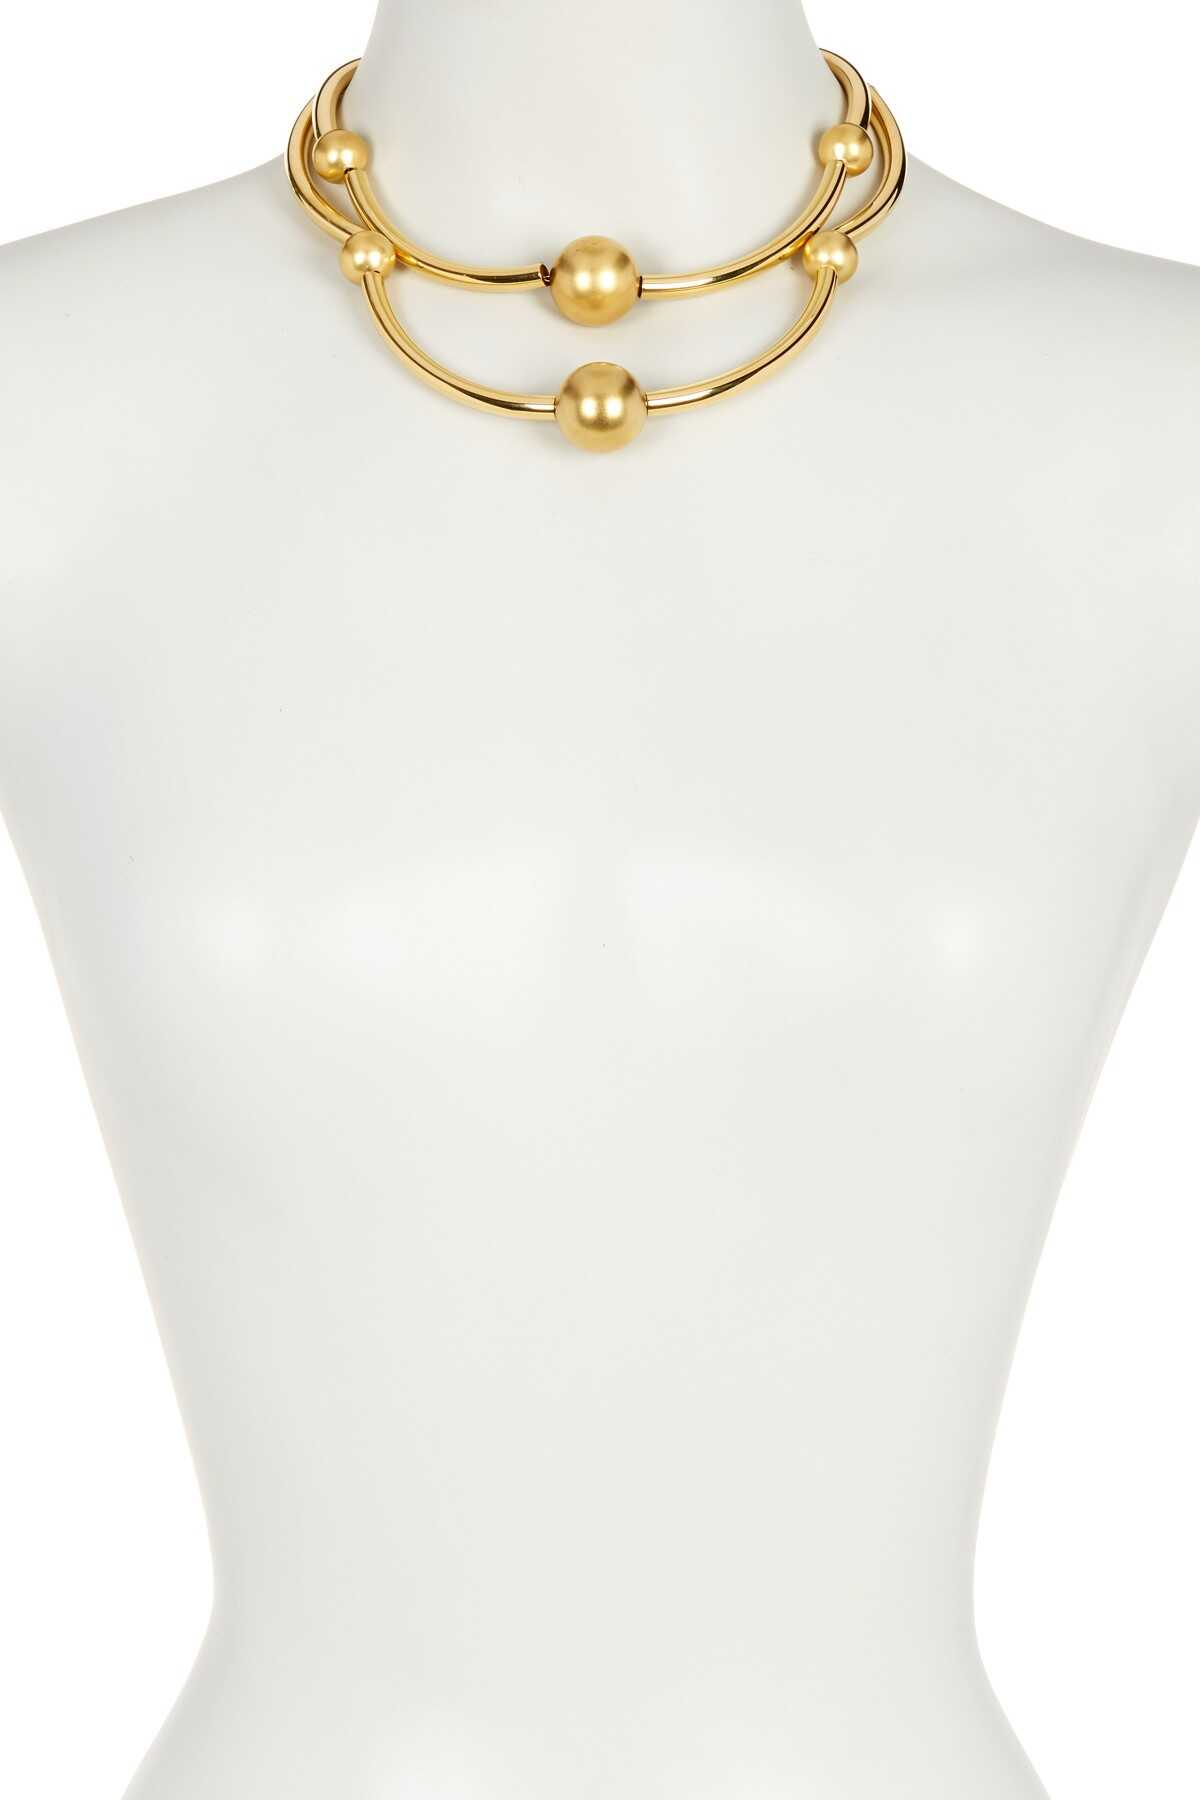 Trina Turk Double Row Necklace GOLD PL-MD GOLD